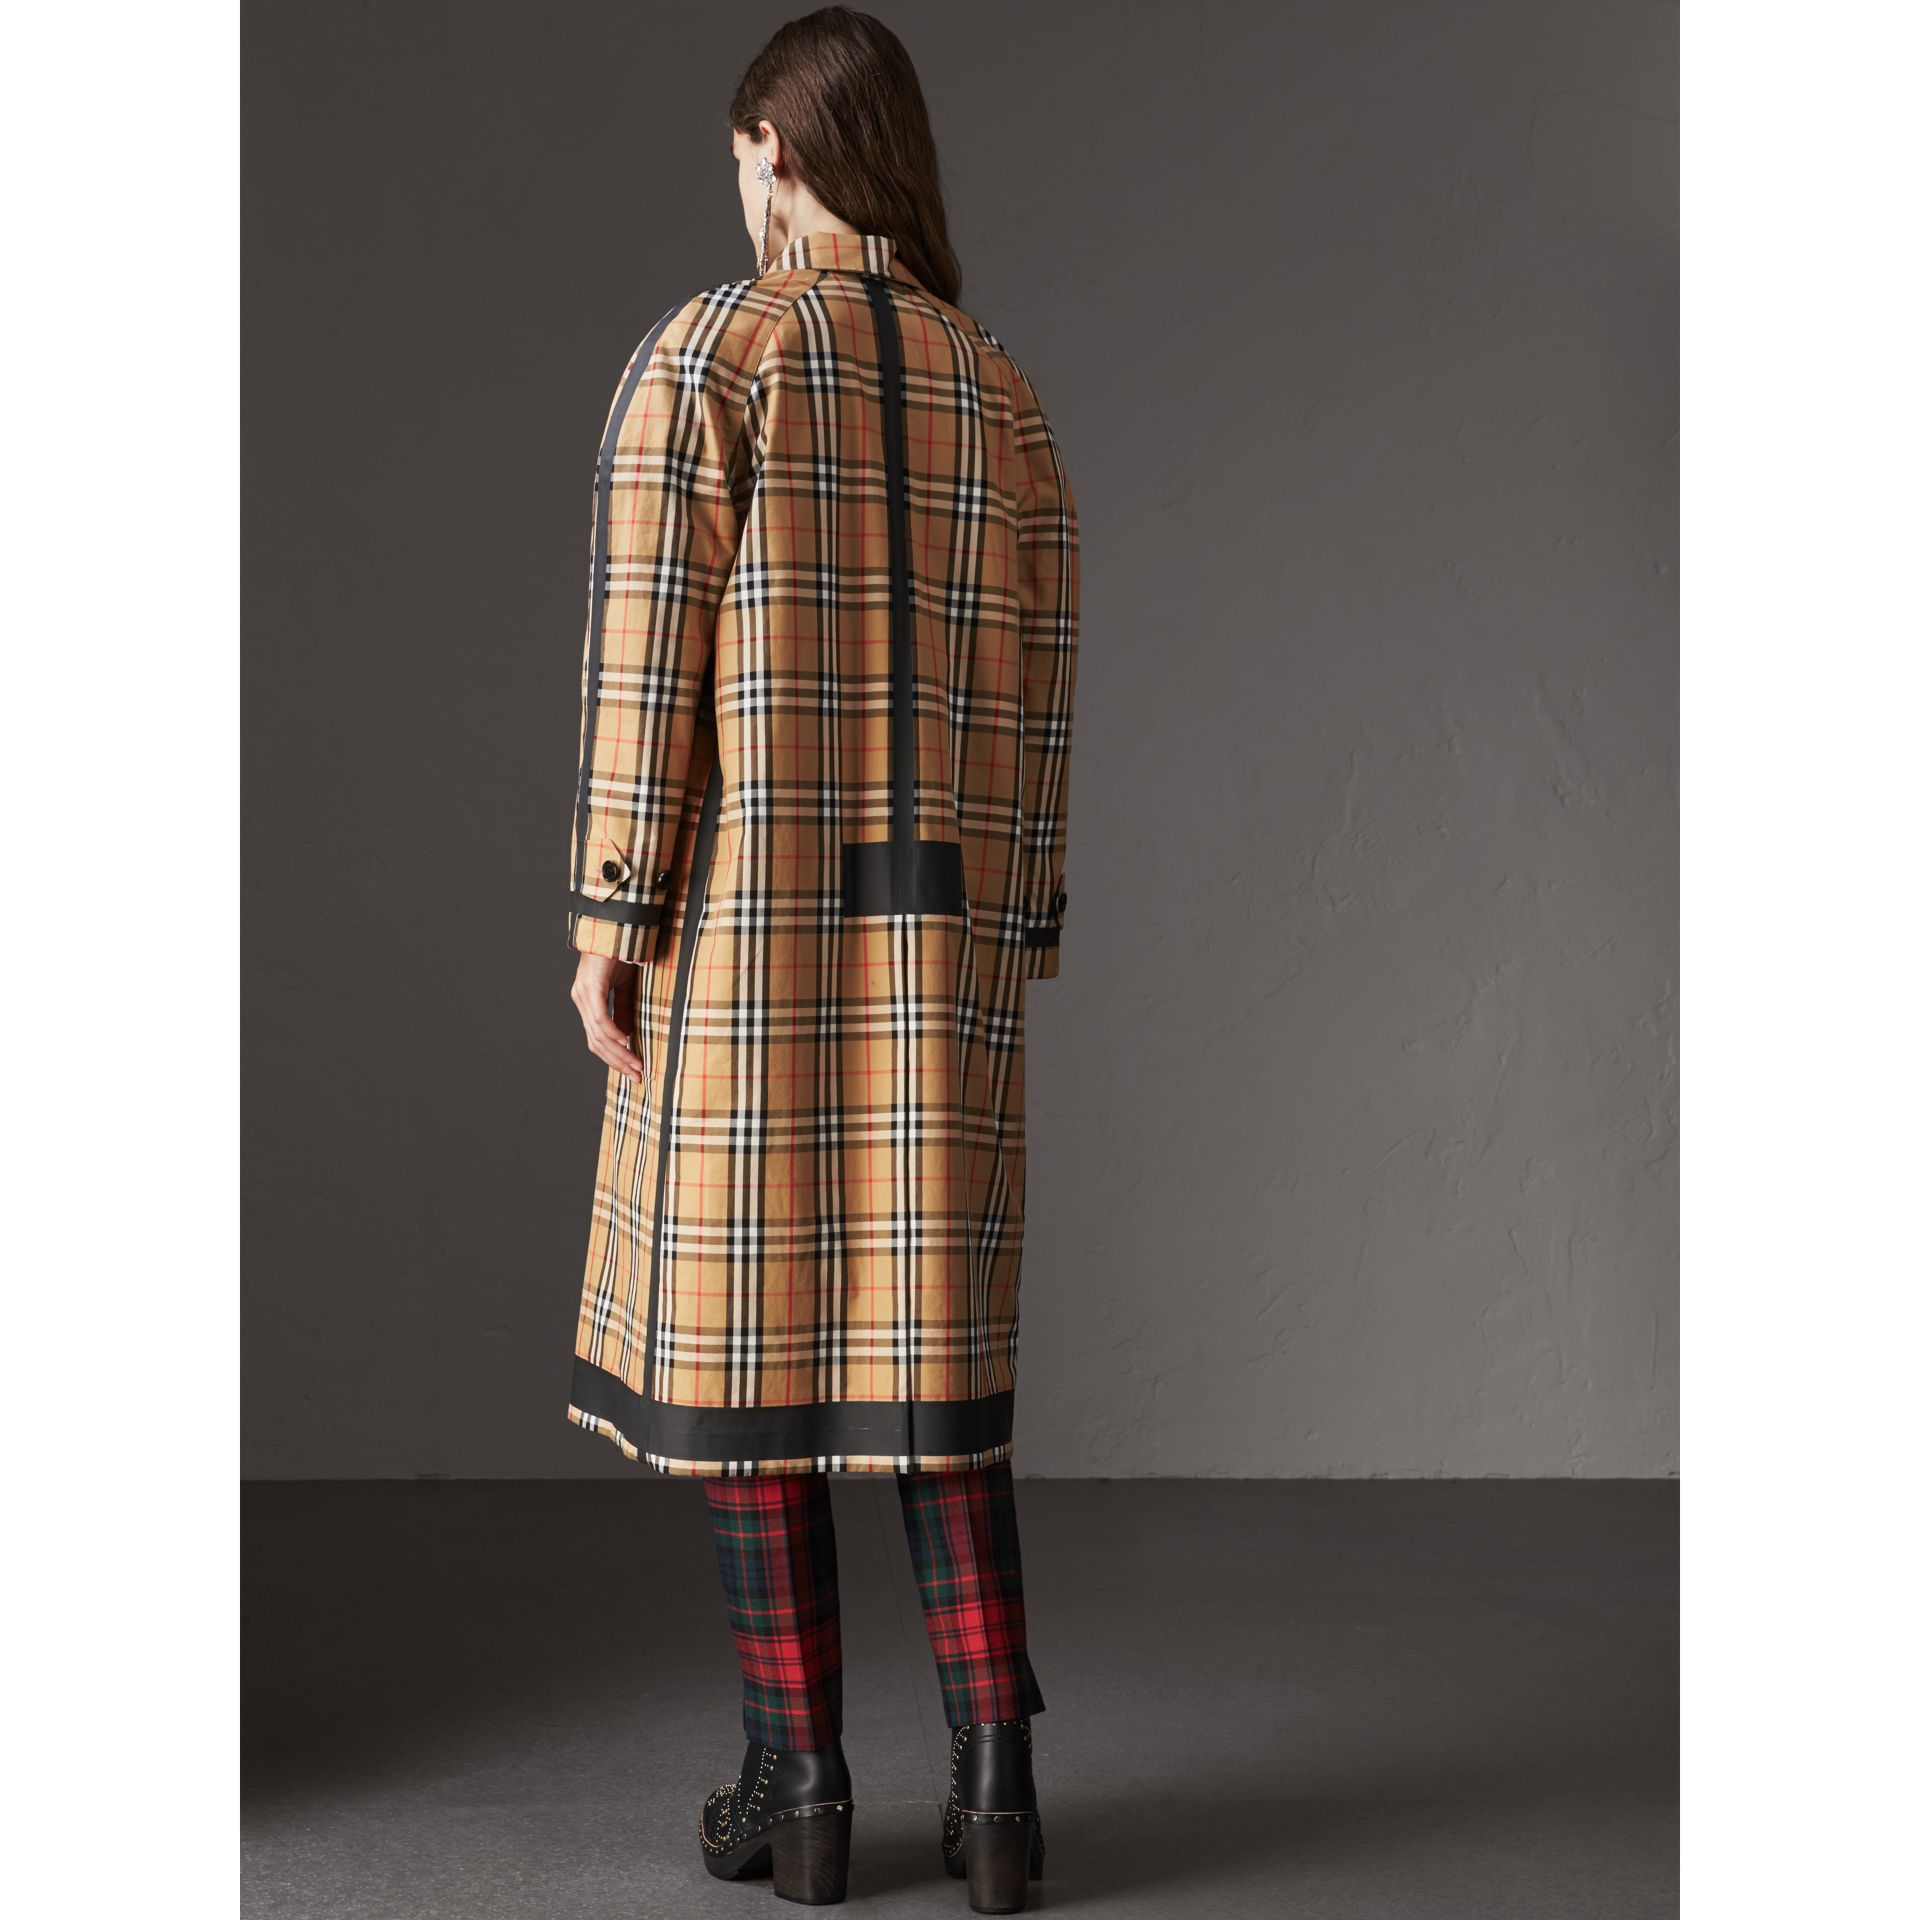 Paletot réversible en gabardine à motif Vintage check (Jaune Antique) - Femme | Burberry - photo de la galerie 2